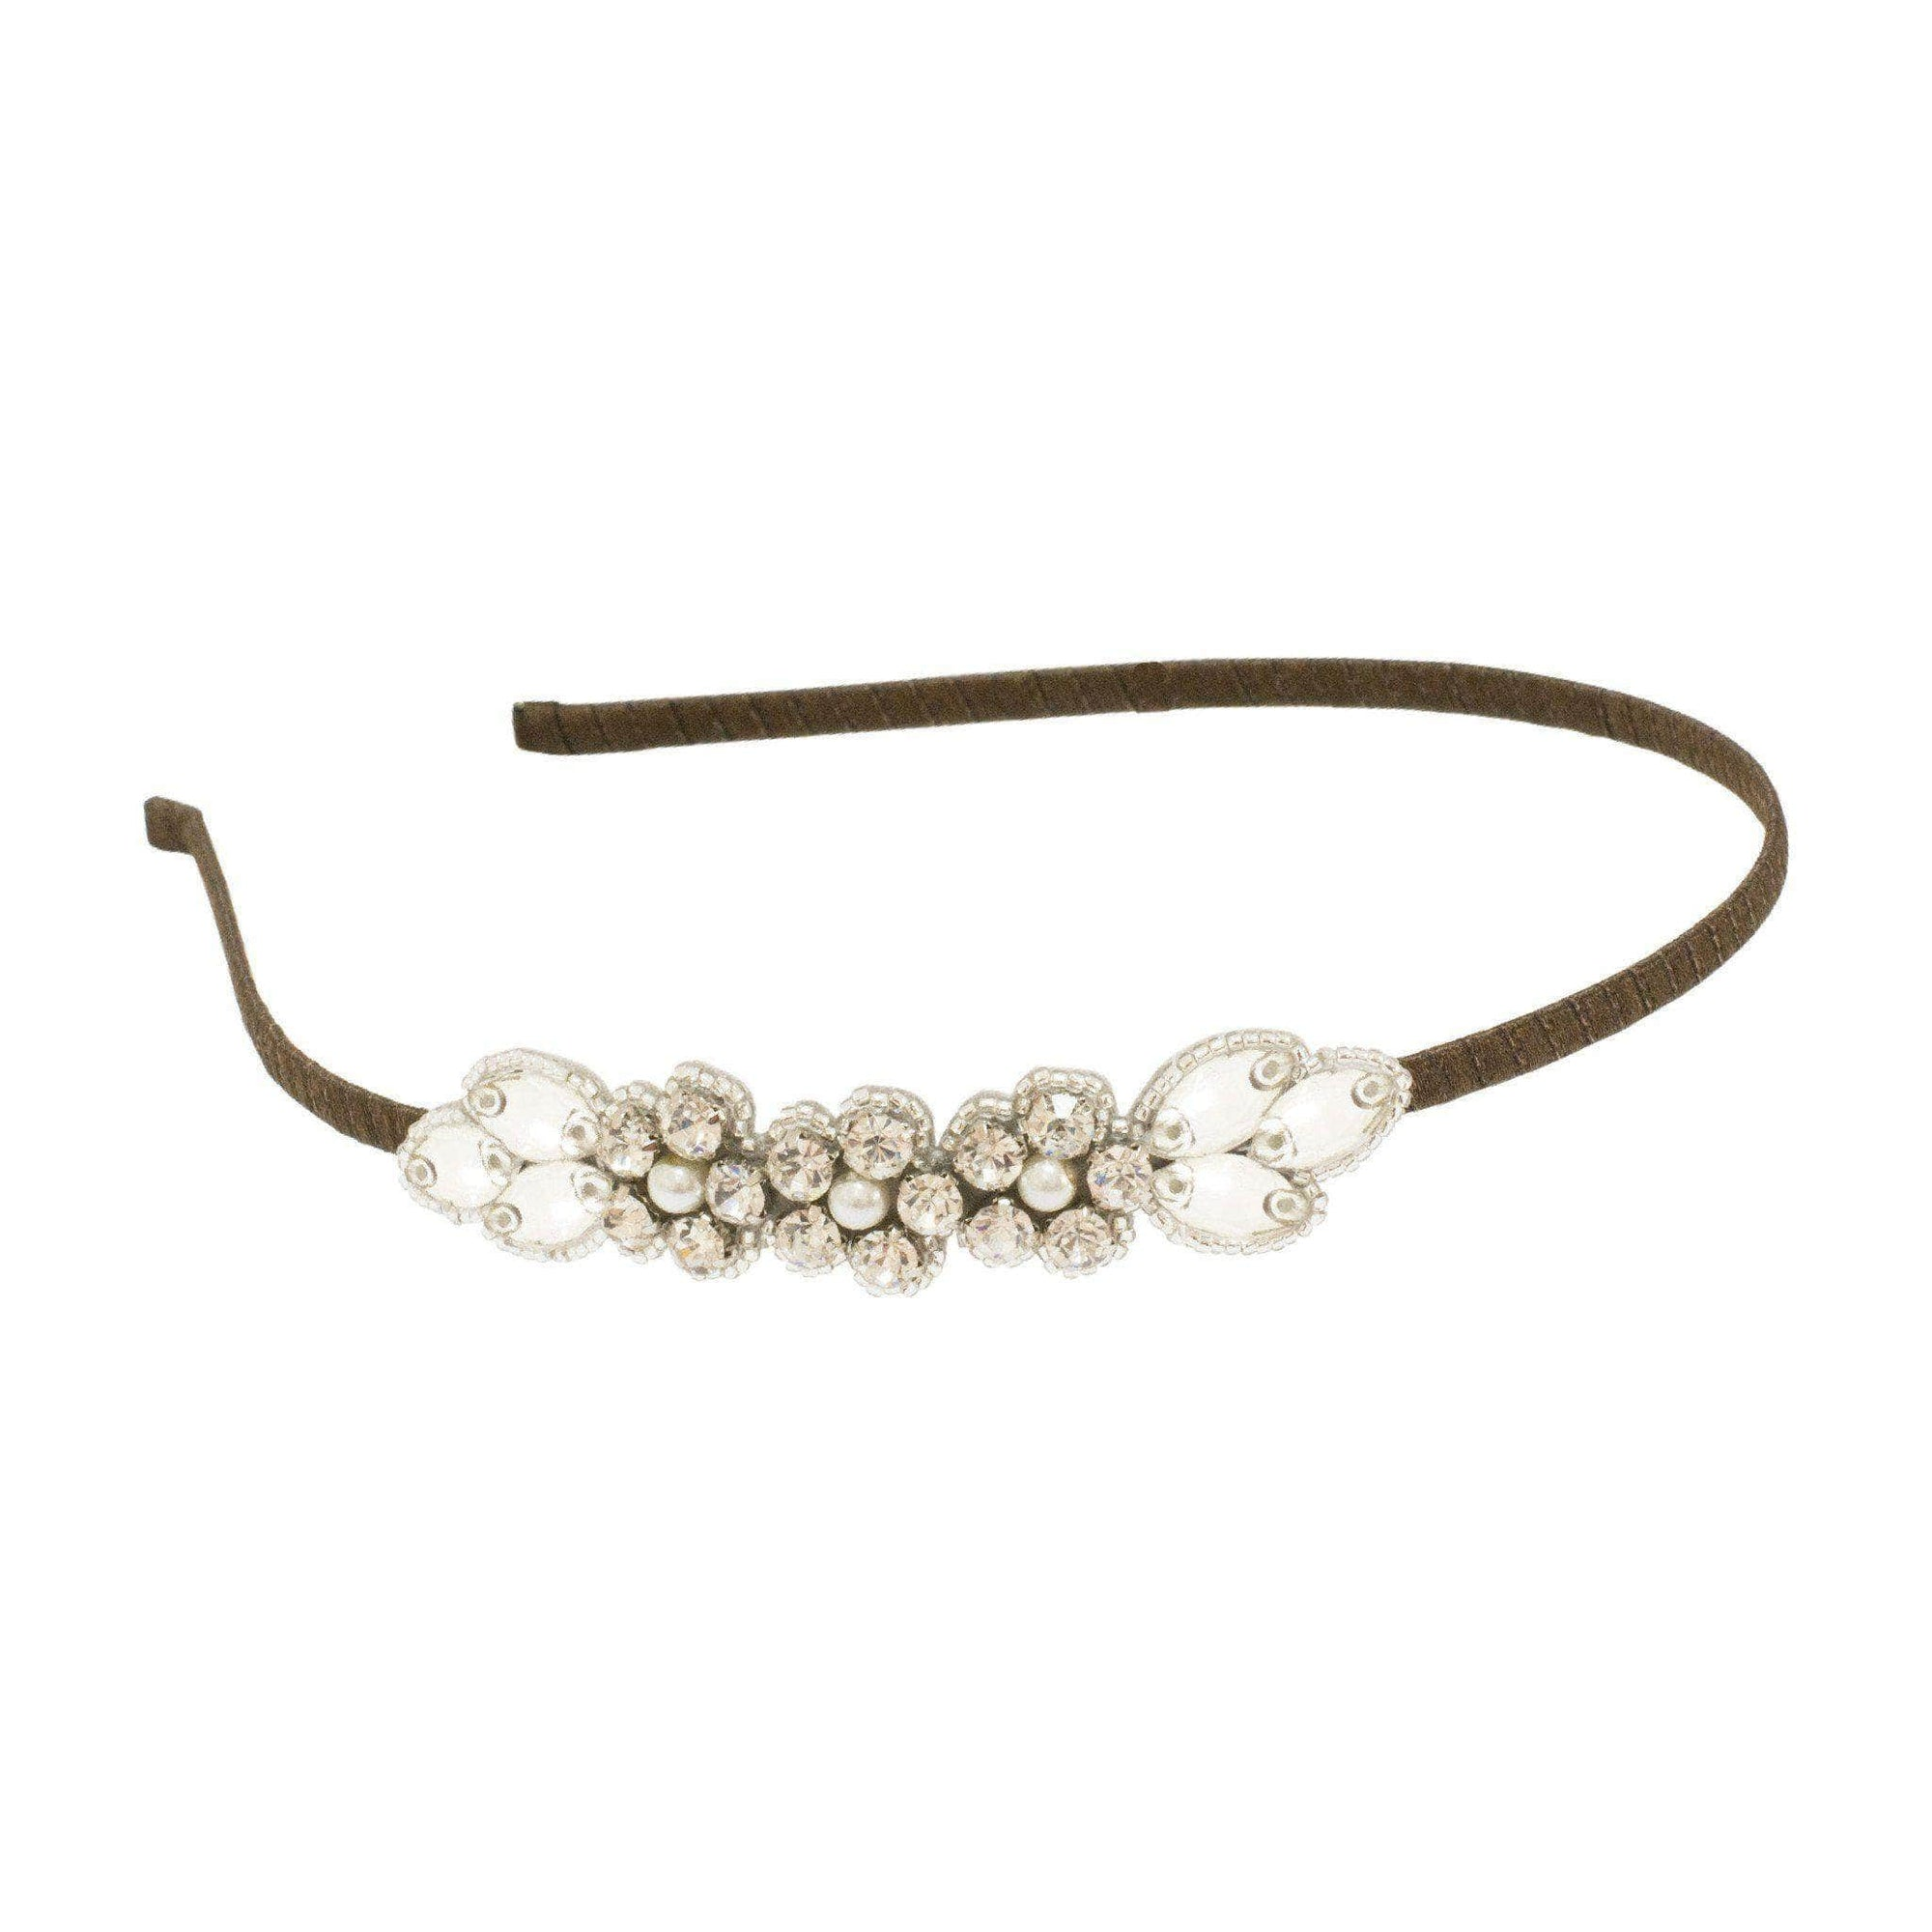 Wedding Headband Silver crystal wedding headband- leaf and floral arrangement 'Livia'